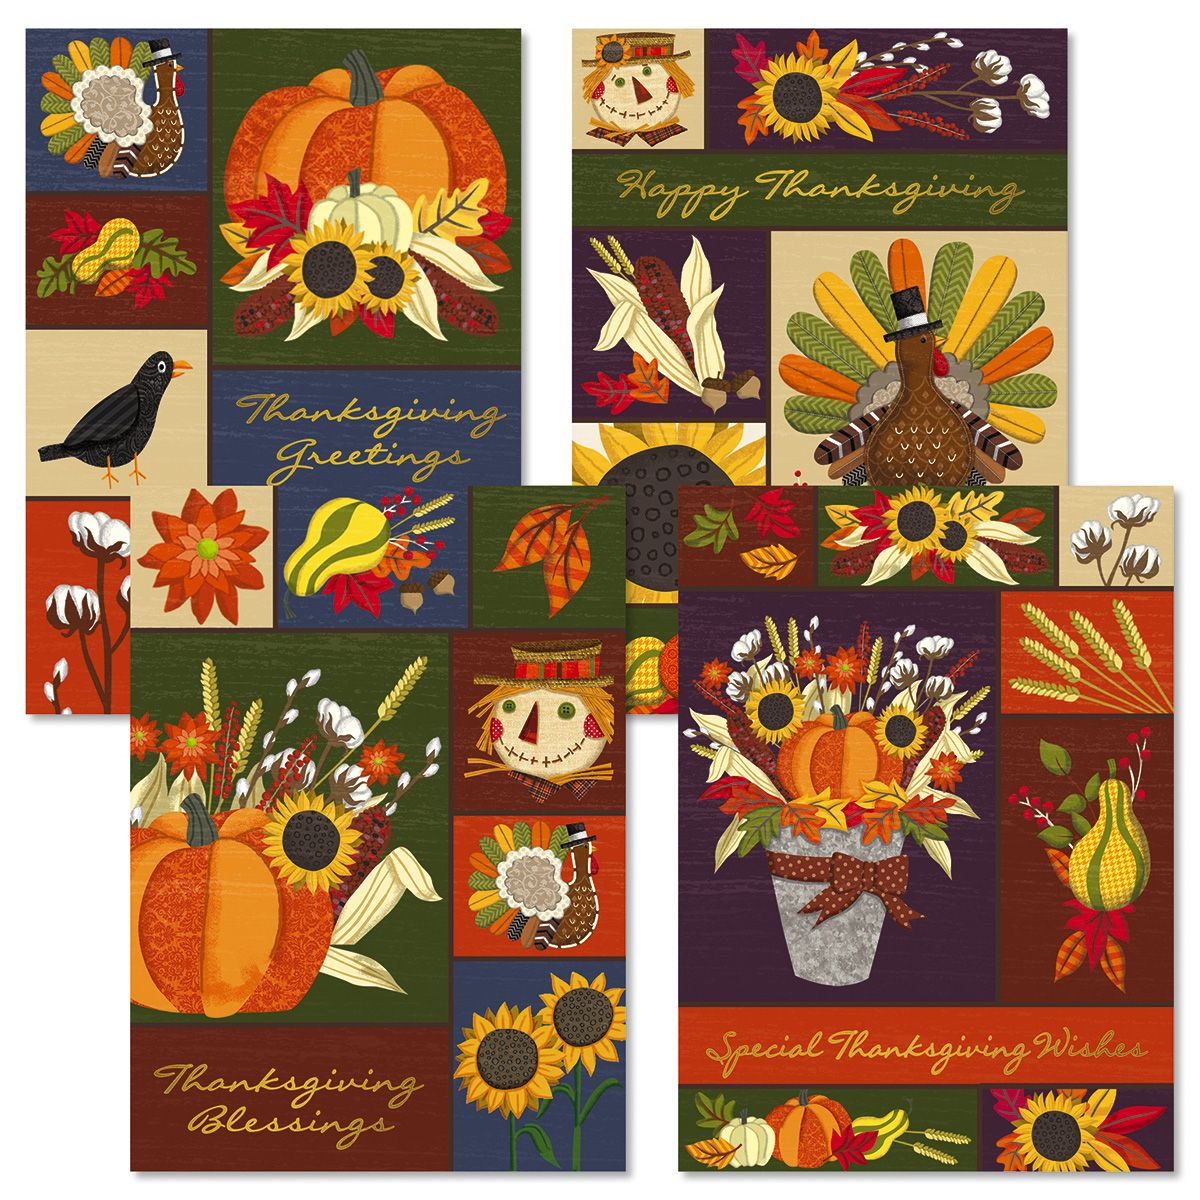 Deluxe Harvest Thanksgiving Collage Cards